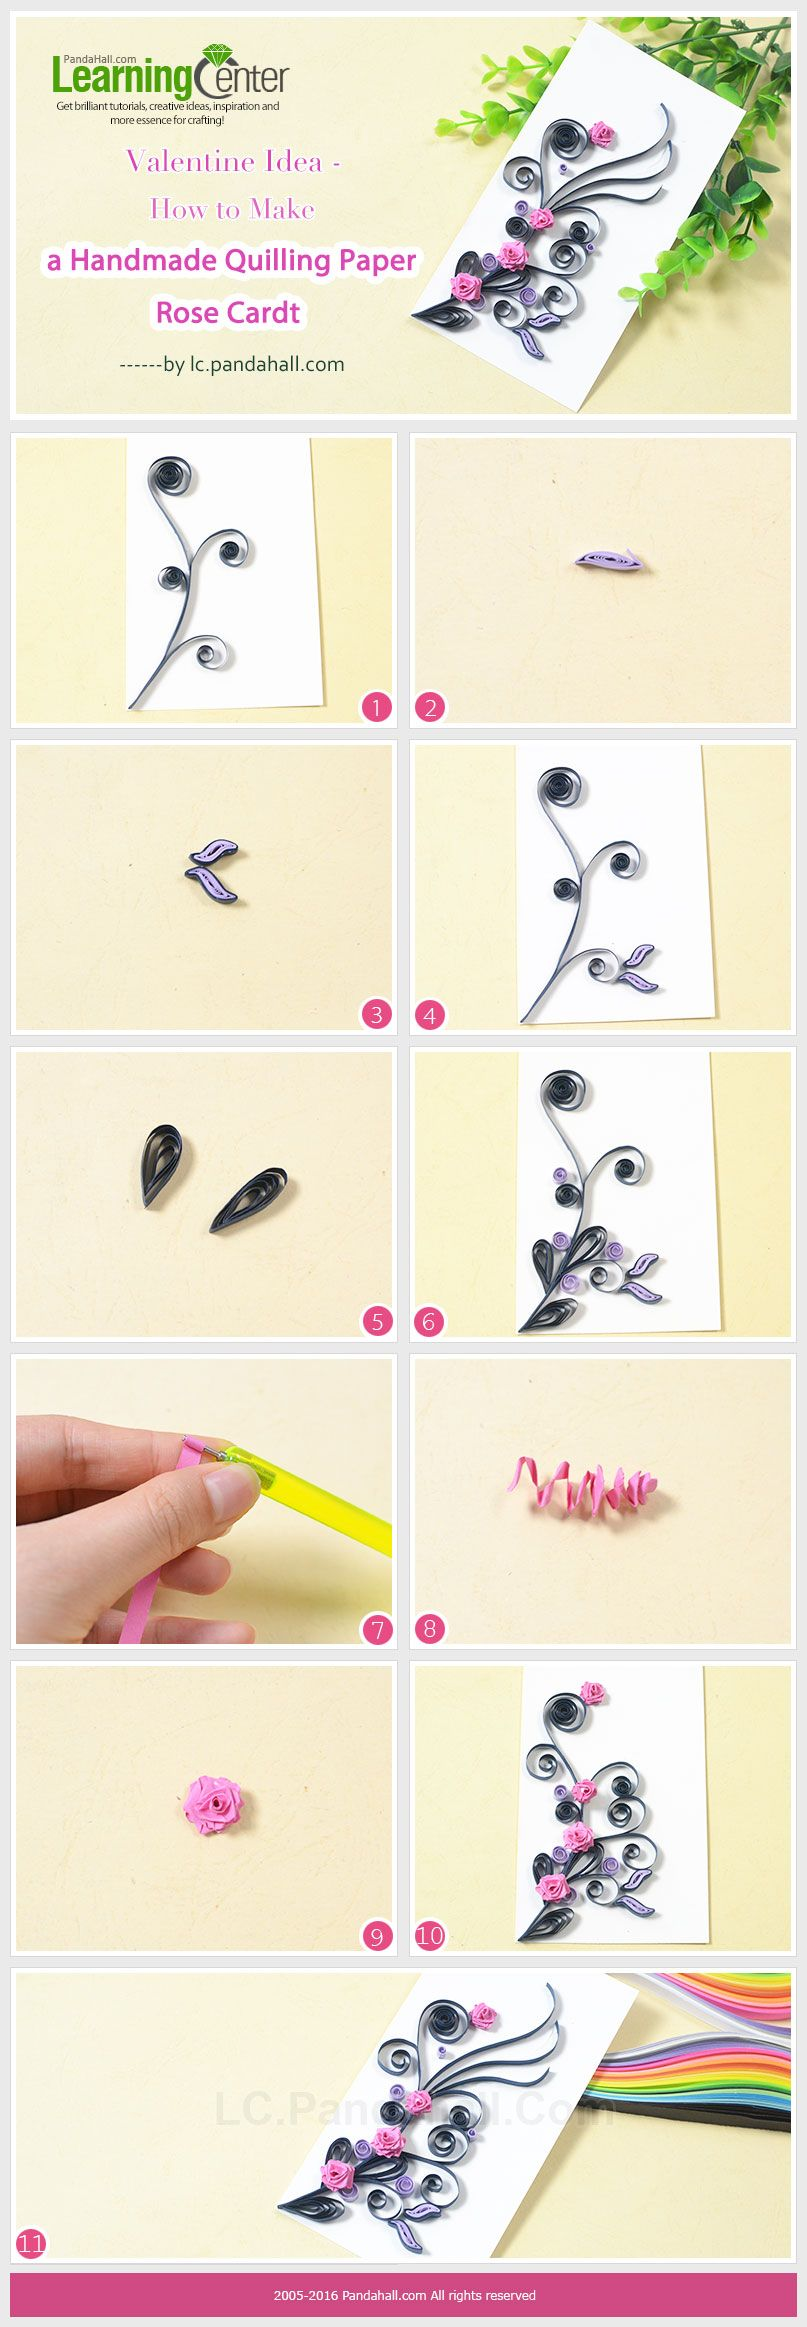 Tutorial On How To Make A Handmade Quilling Paper Rose Card From  Lcndahall